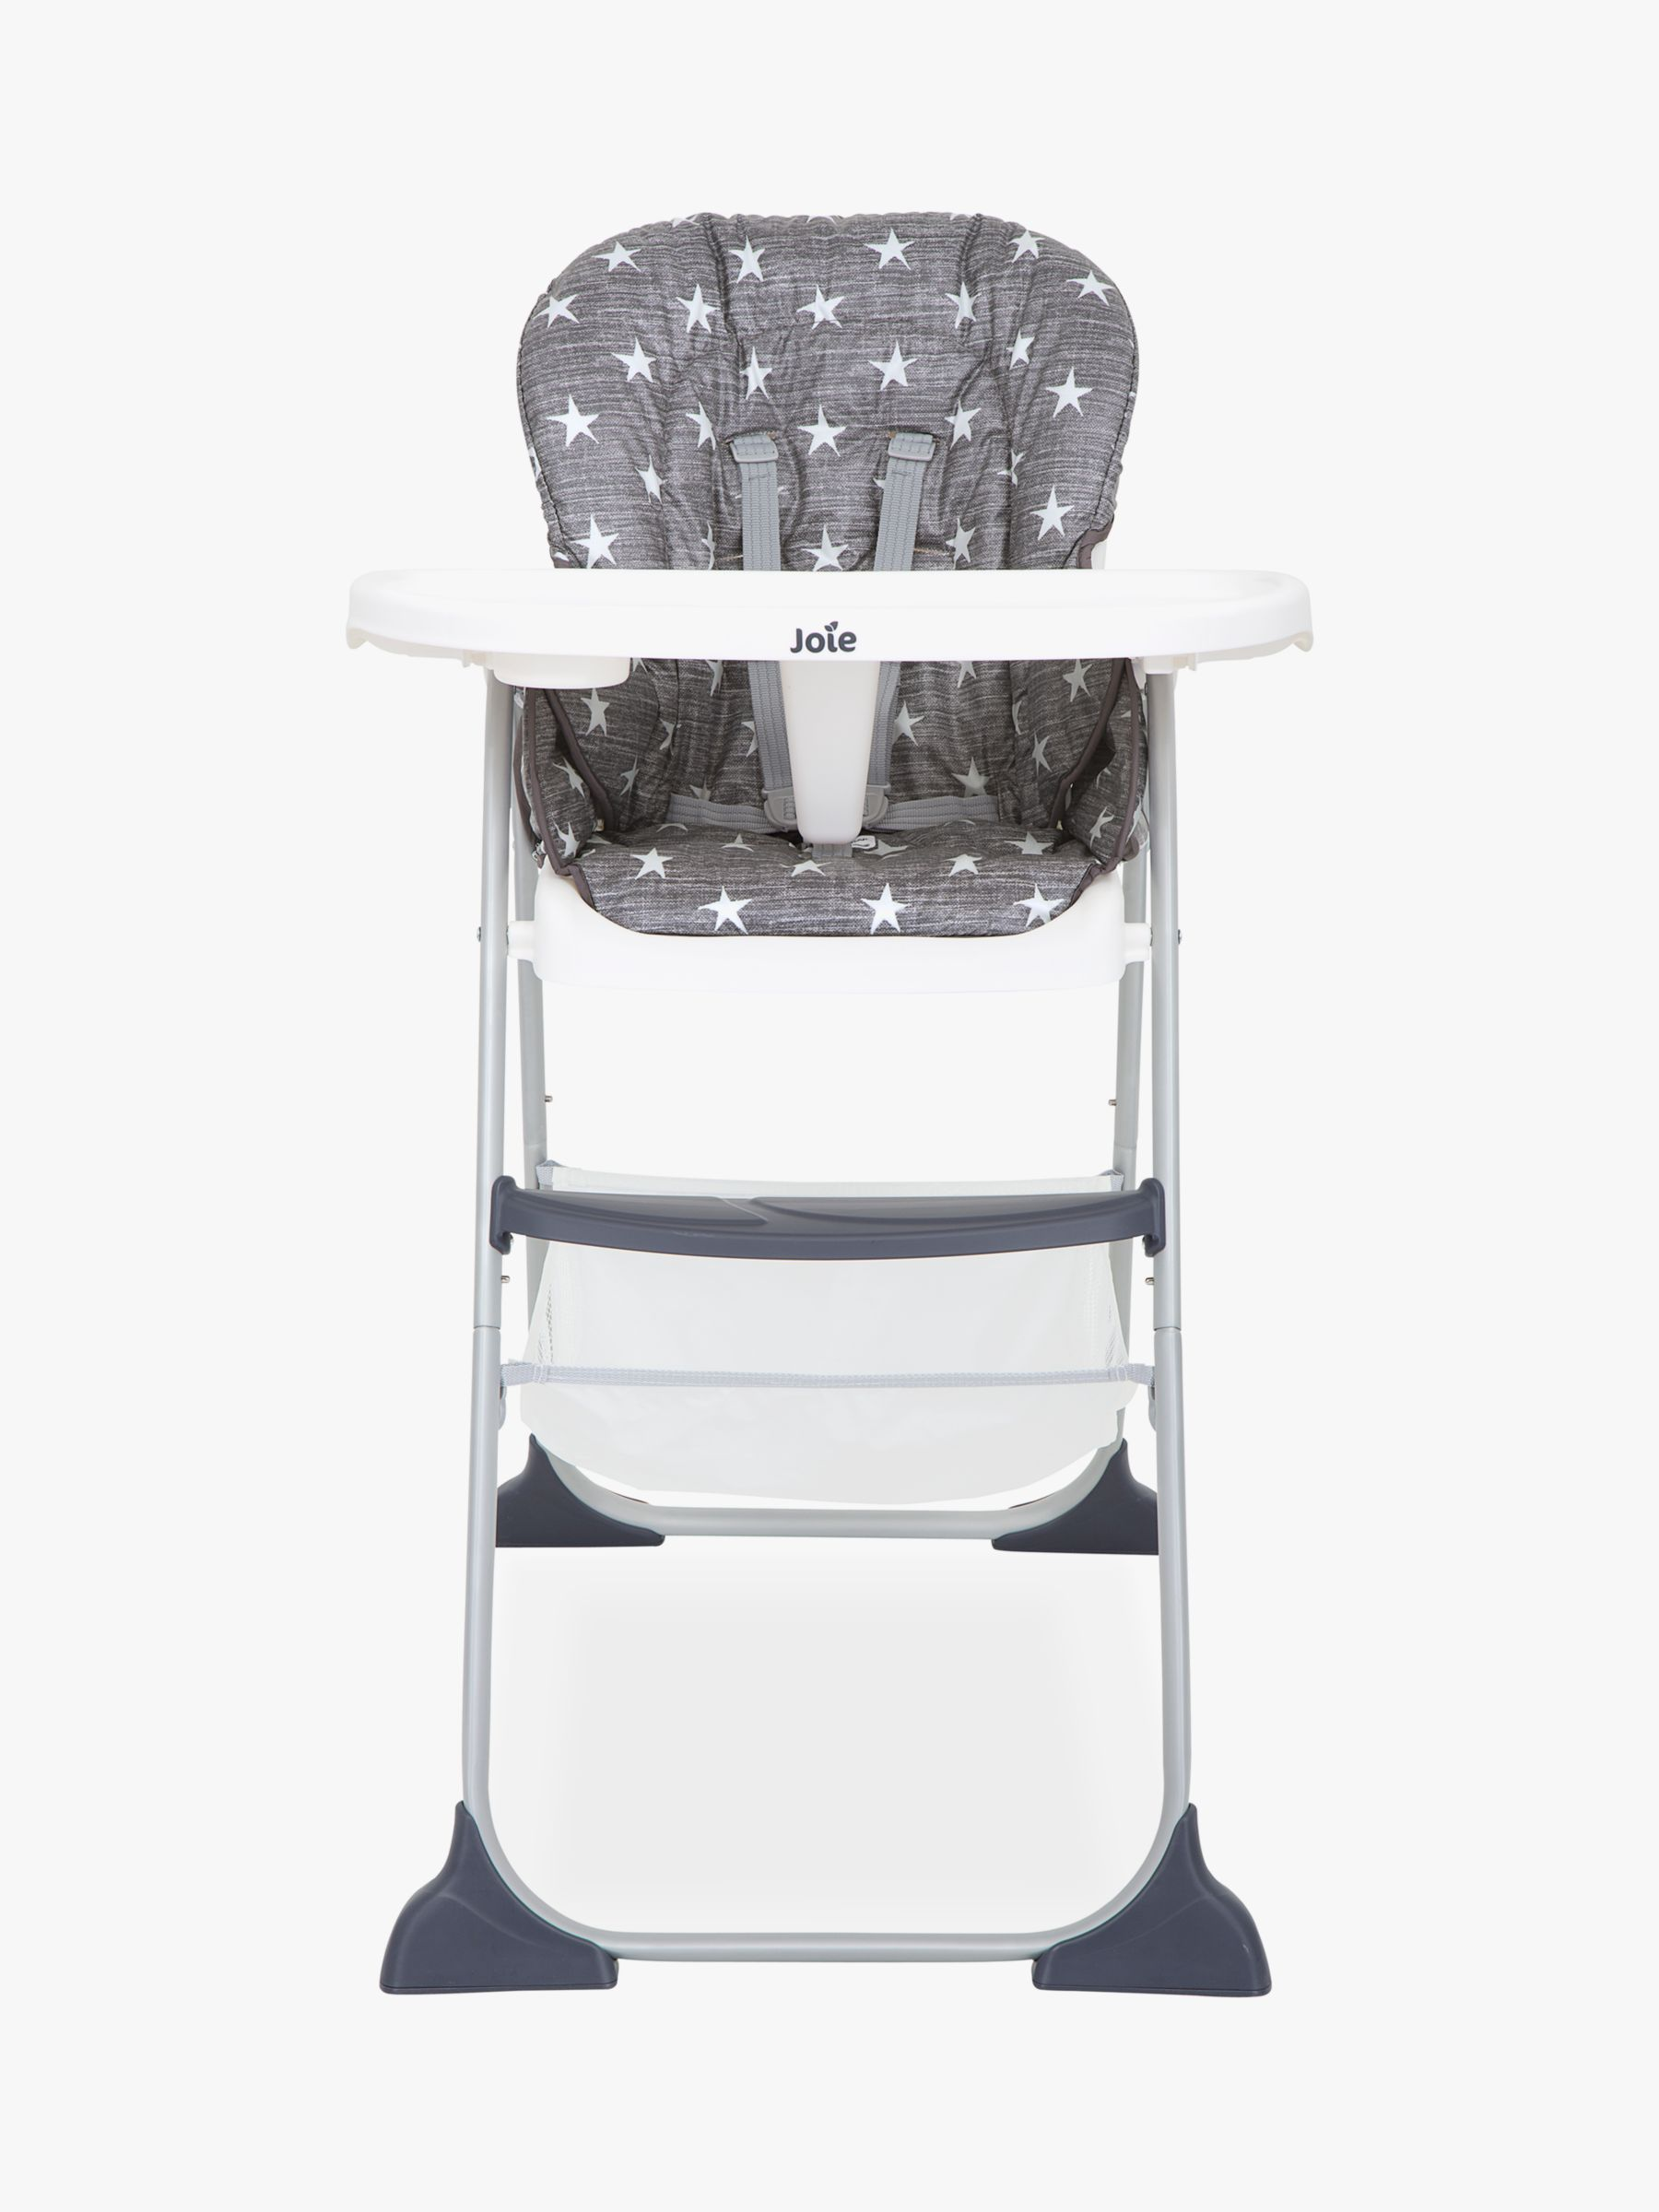 Joie Baby Joie Baby Mimzy Snacker Highchair, Twinkle Linen